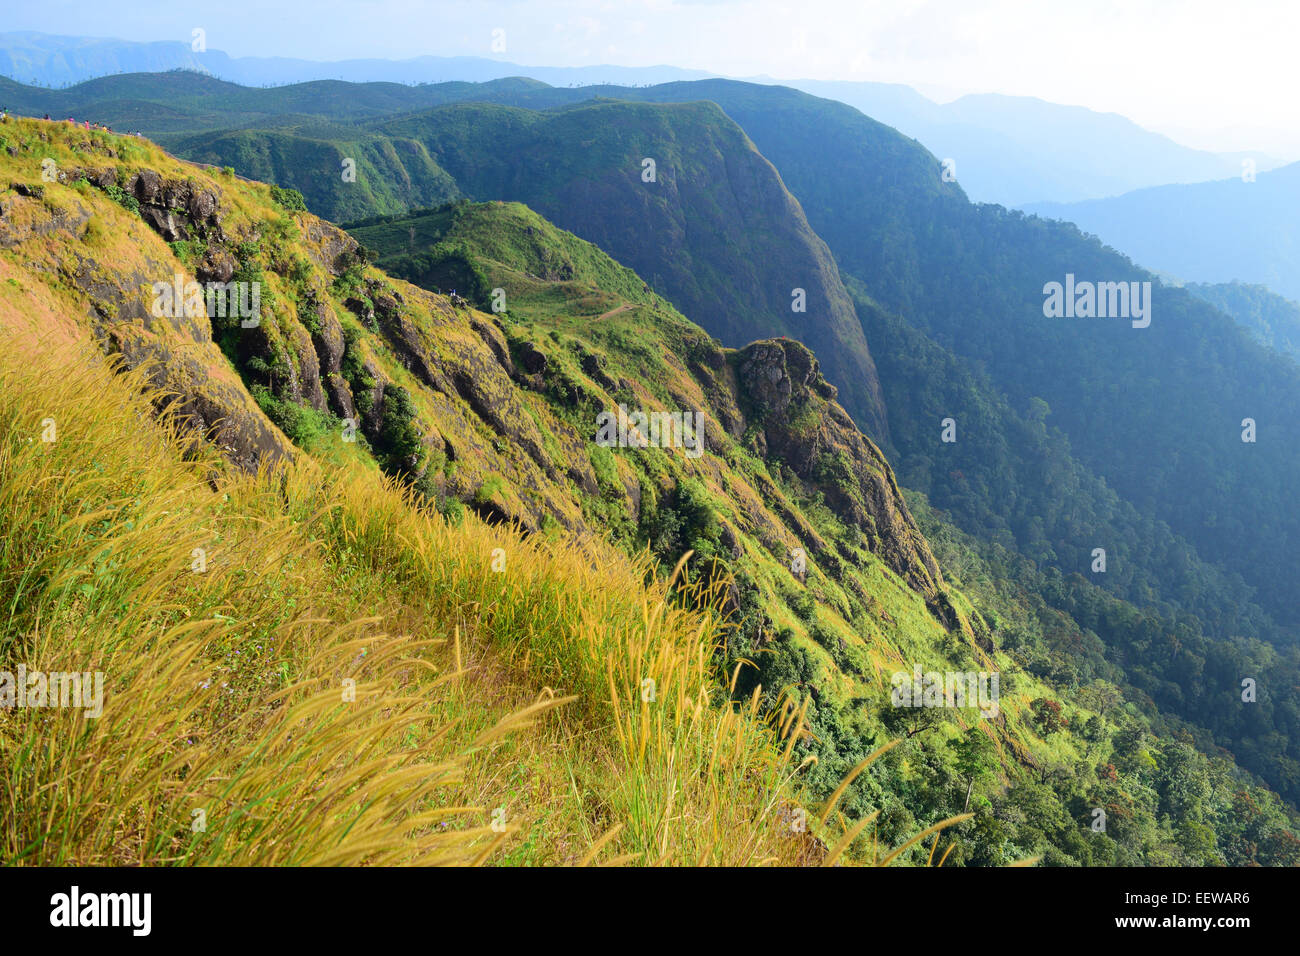 Western Ghats India Scenic Landscape Mountains and Valleys at Idukki District of Kerala - Stock Image